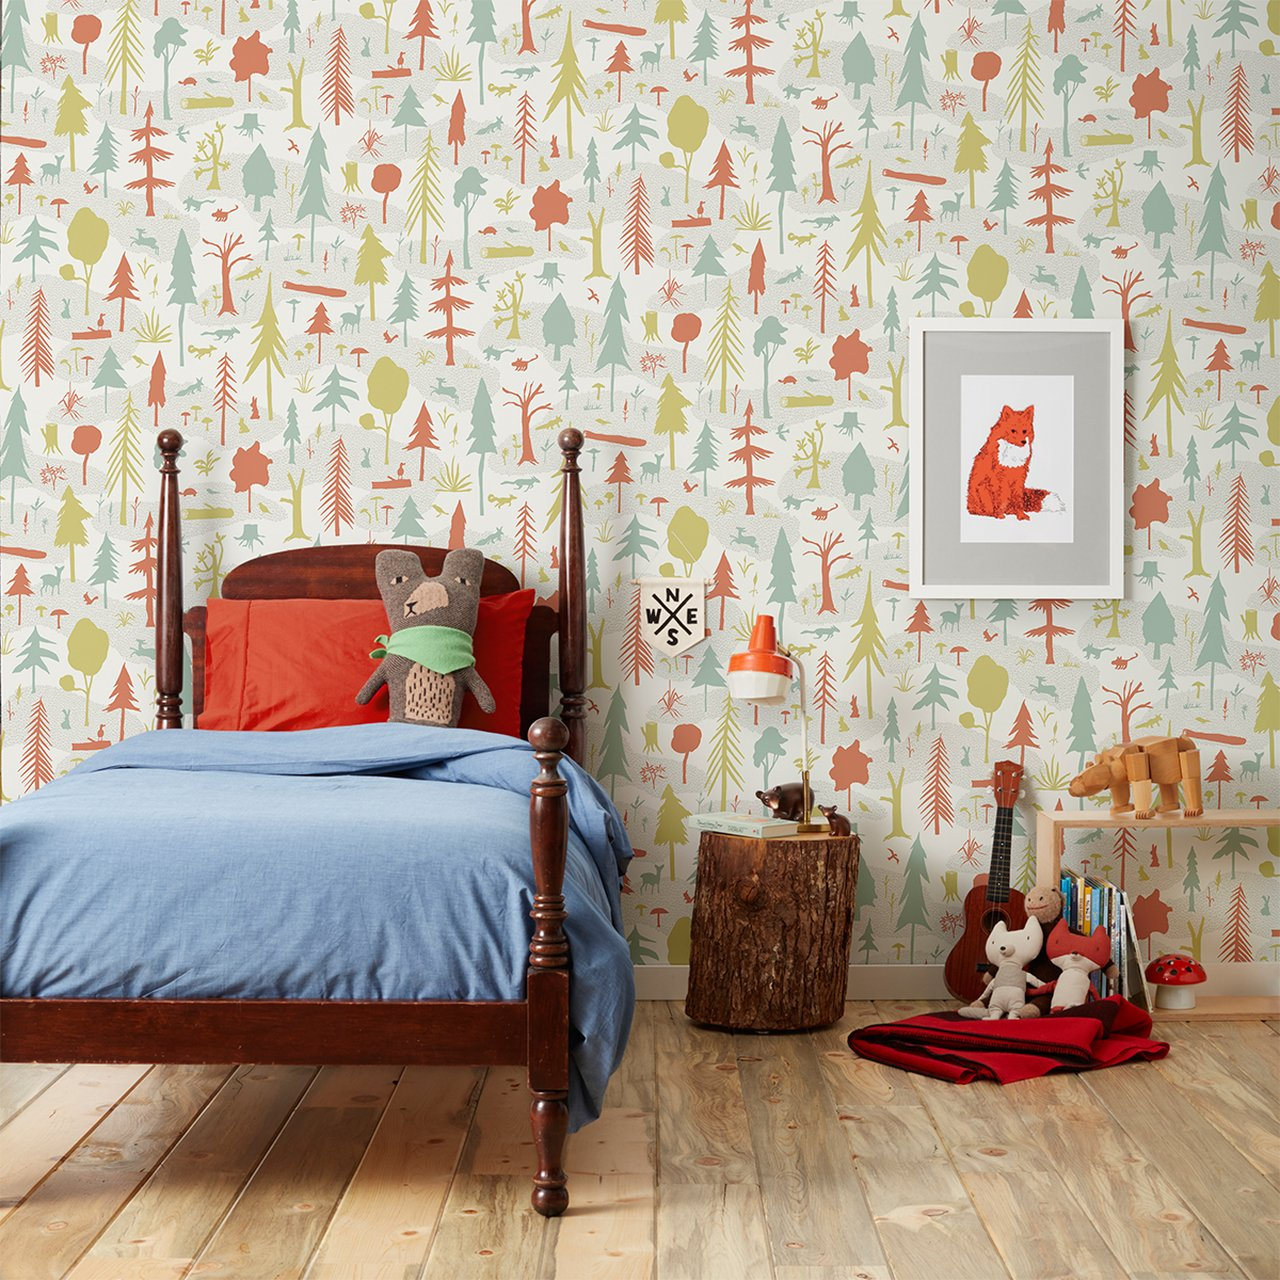 Wilderness by Makelike   Covered Wallpaper 1200x1200